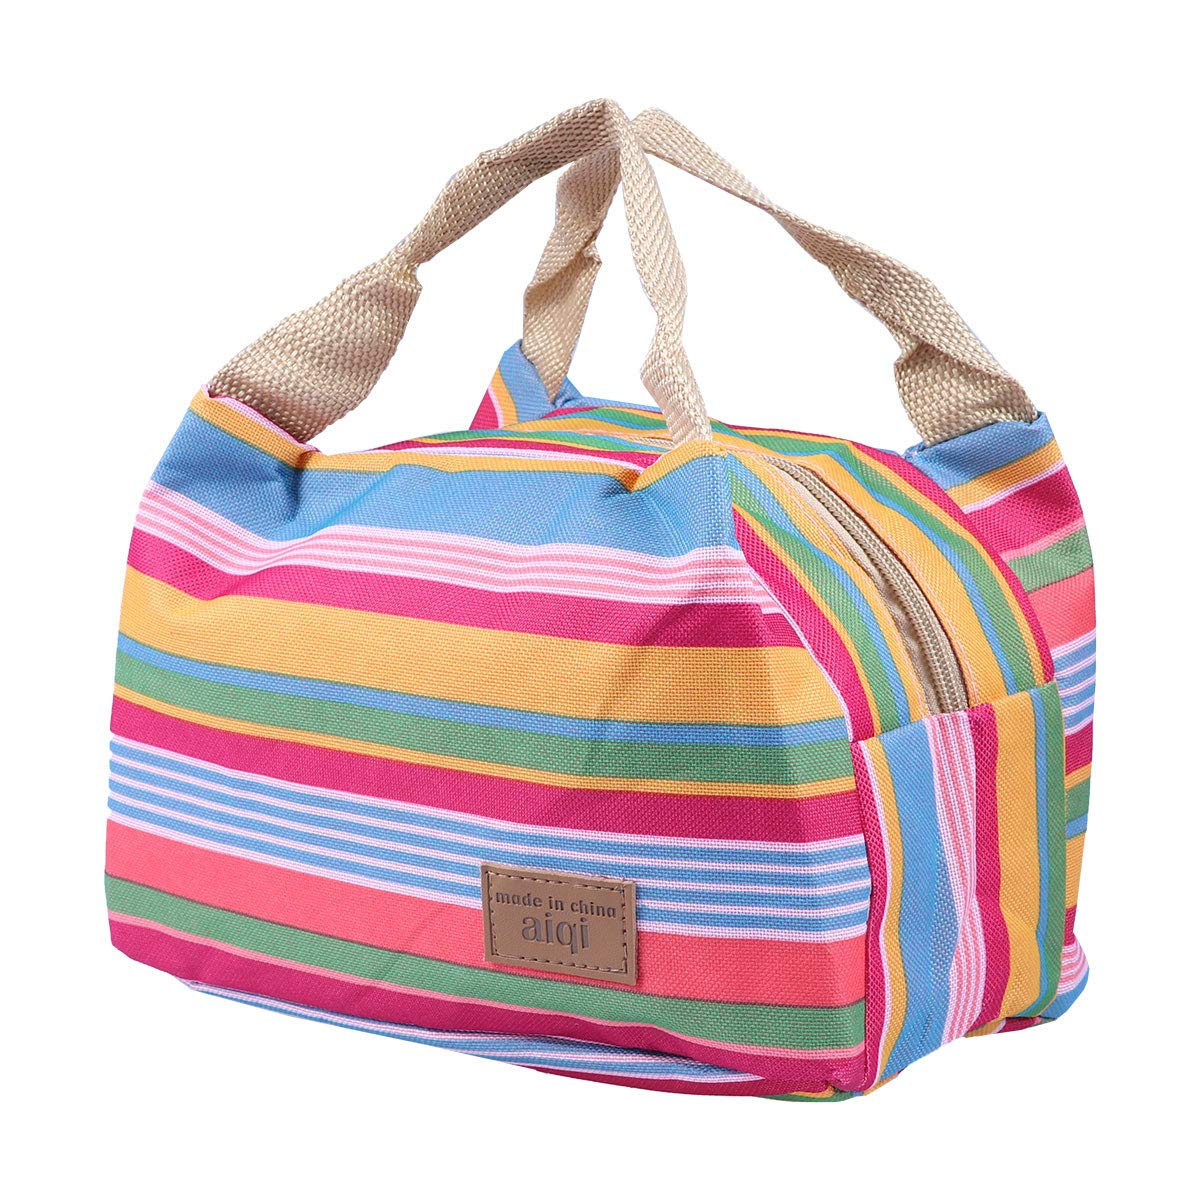 BESTOMZ Lunch Bag Insulated Lunch Tote Soft Bento Cooler Bag Travel Picnic Food Holder(Blue Striped) UKPPLBDH2894